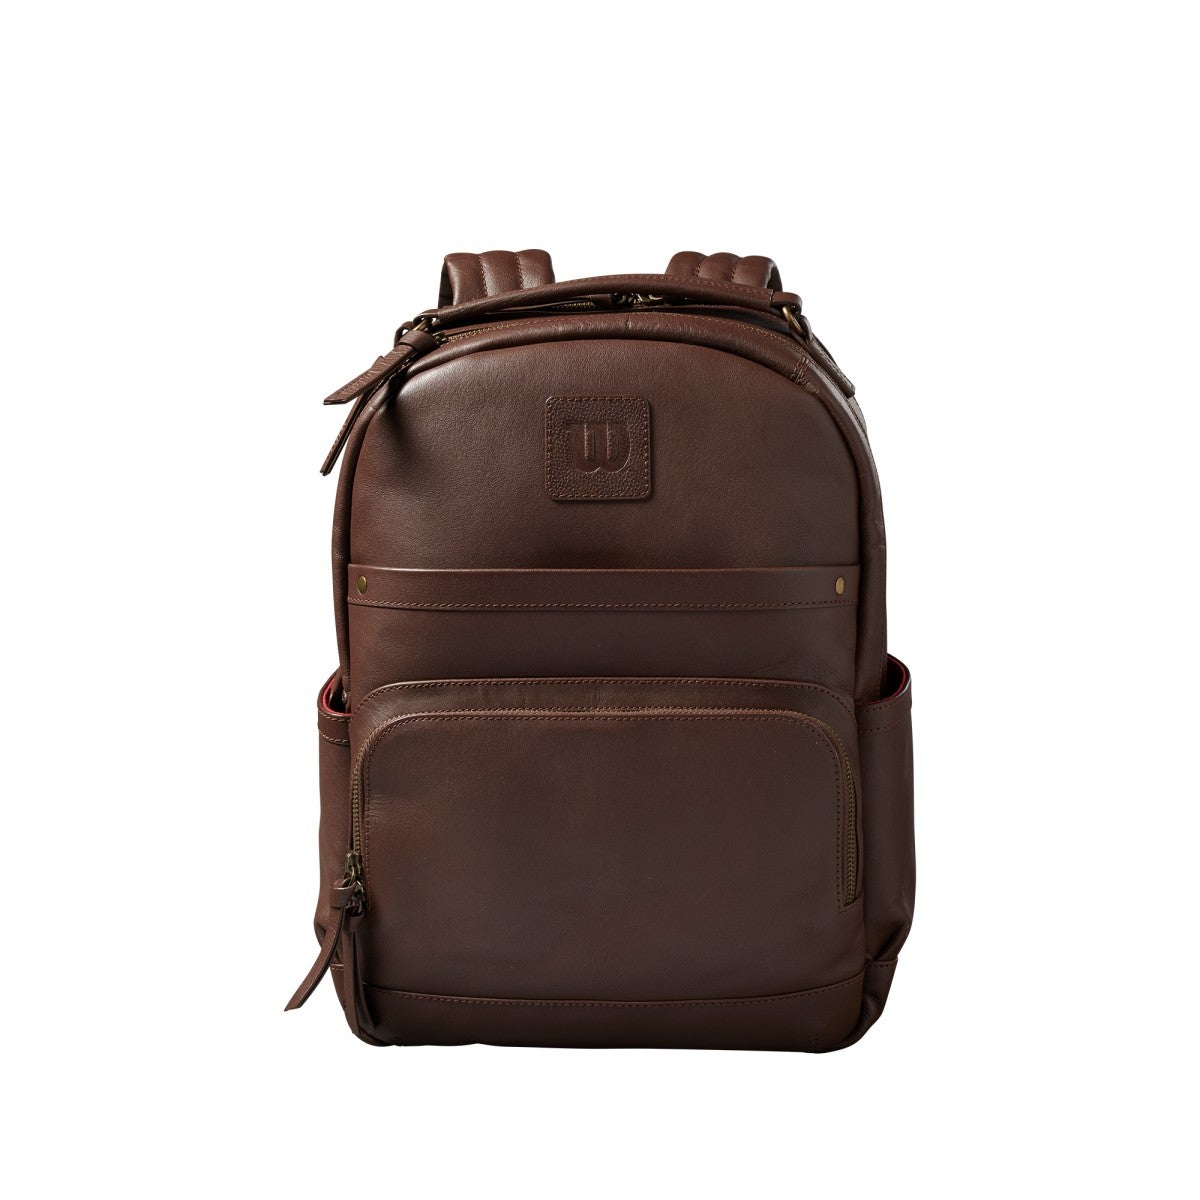 Wilson 1914 Leather Backpack